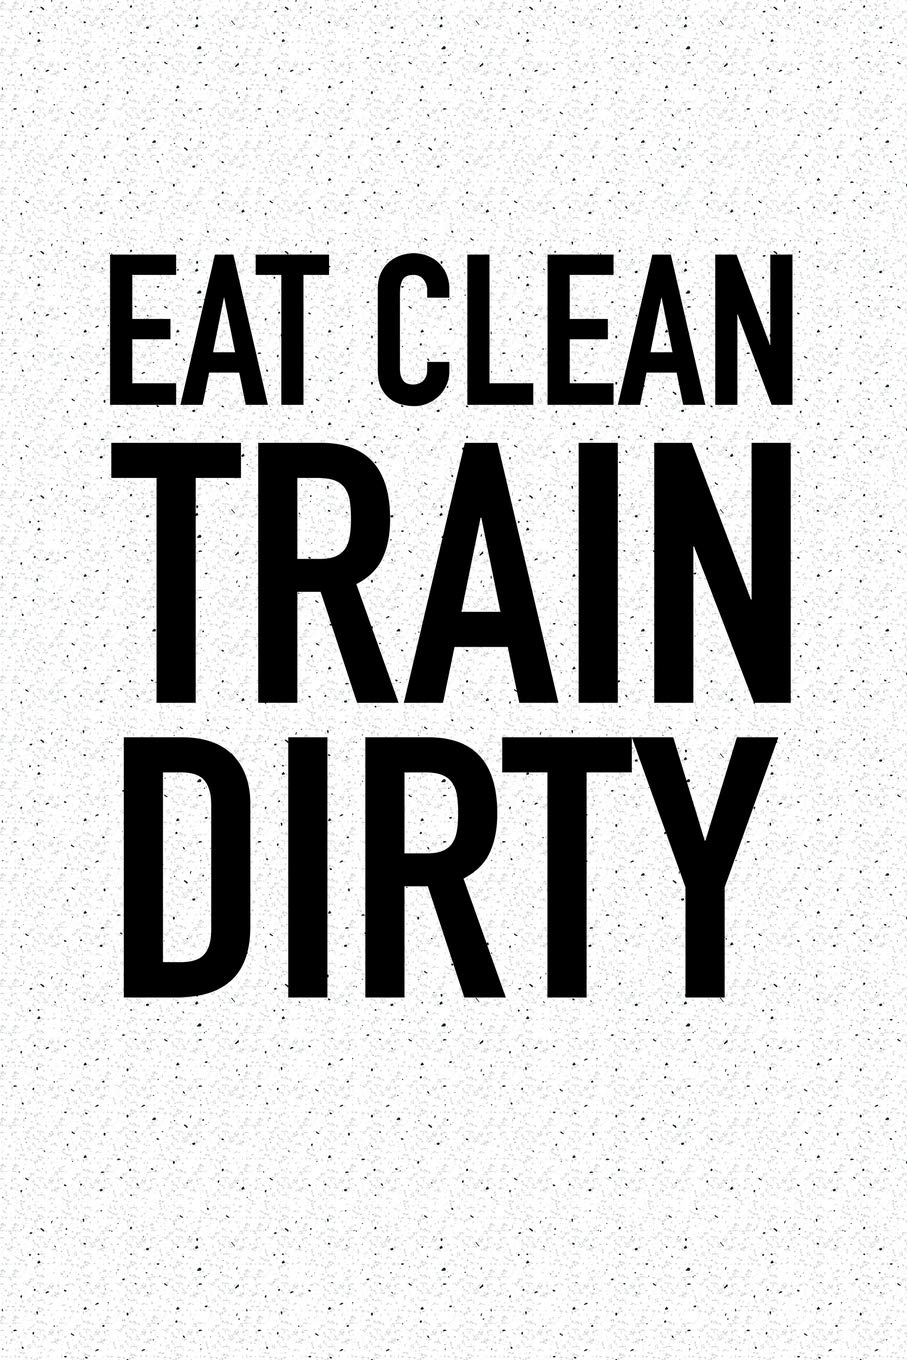 fbdbfd10 Eat Clean Train Dirty: A 6x9 Inch Matte Softcover Notebook Journal With 120  Blank Lined Pages And A Motivational Foodie Gym Workout Cover Slogan  Paperback ...